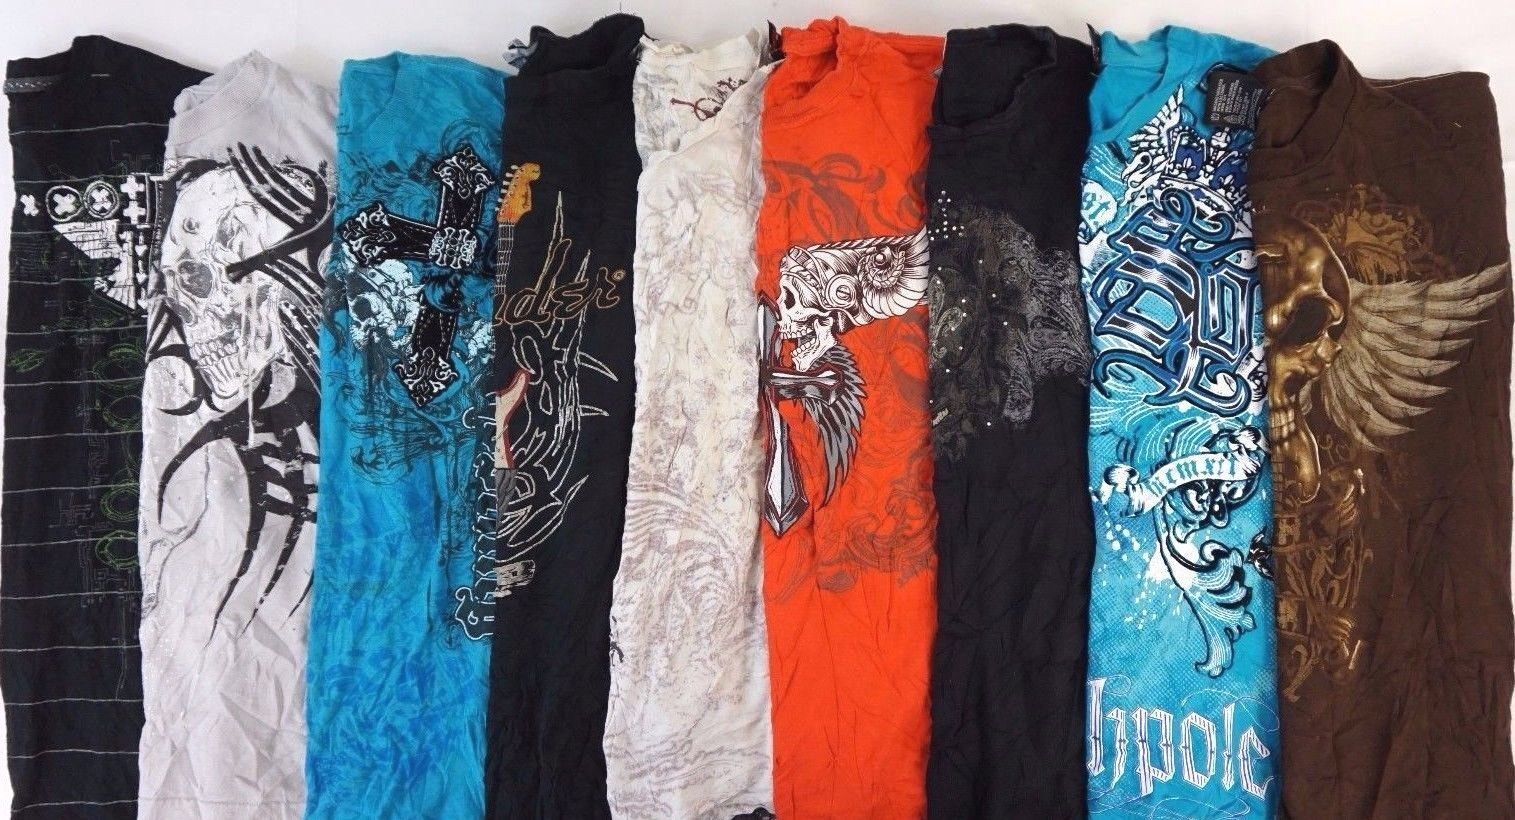 Mens Graphic Tees Lot of 10 Random Brand T-Shirts BEST DEAL COOLEST Shirts